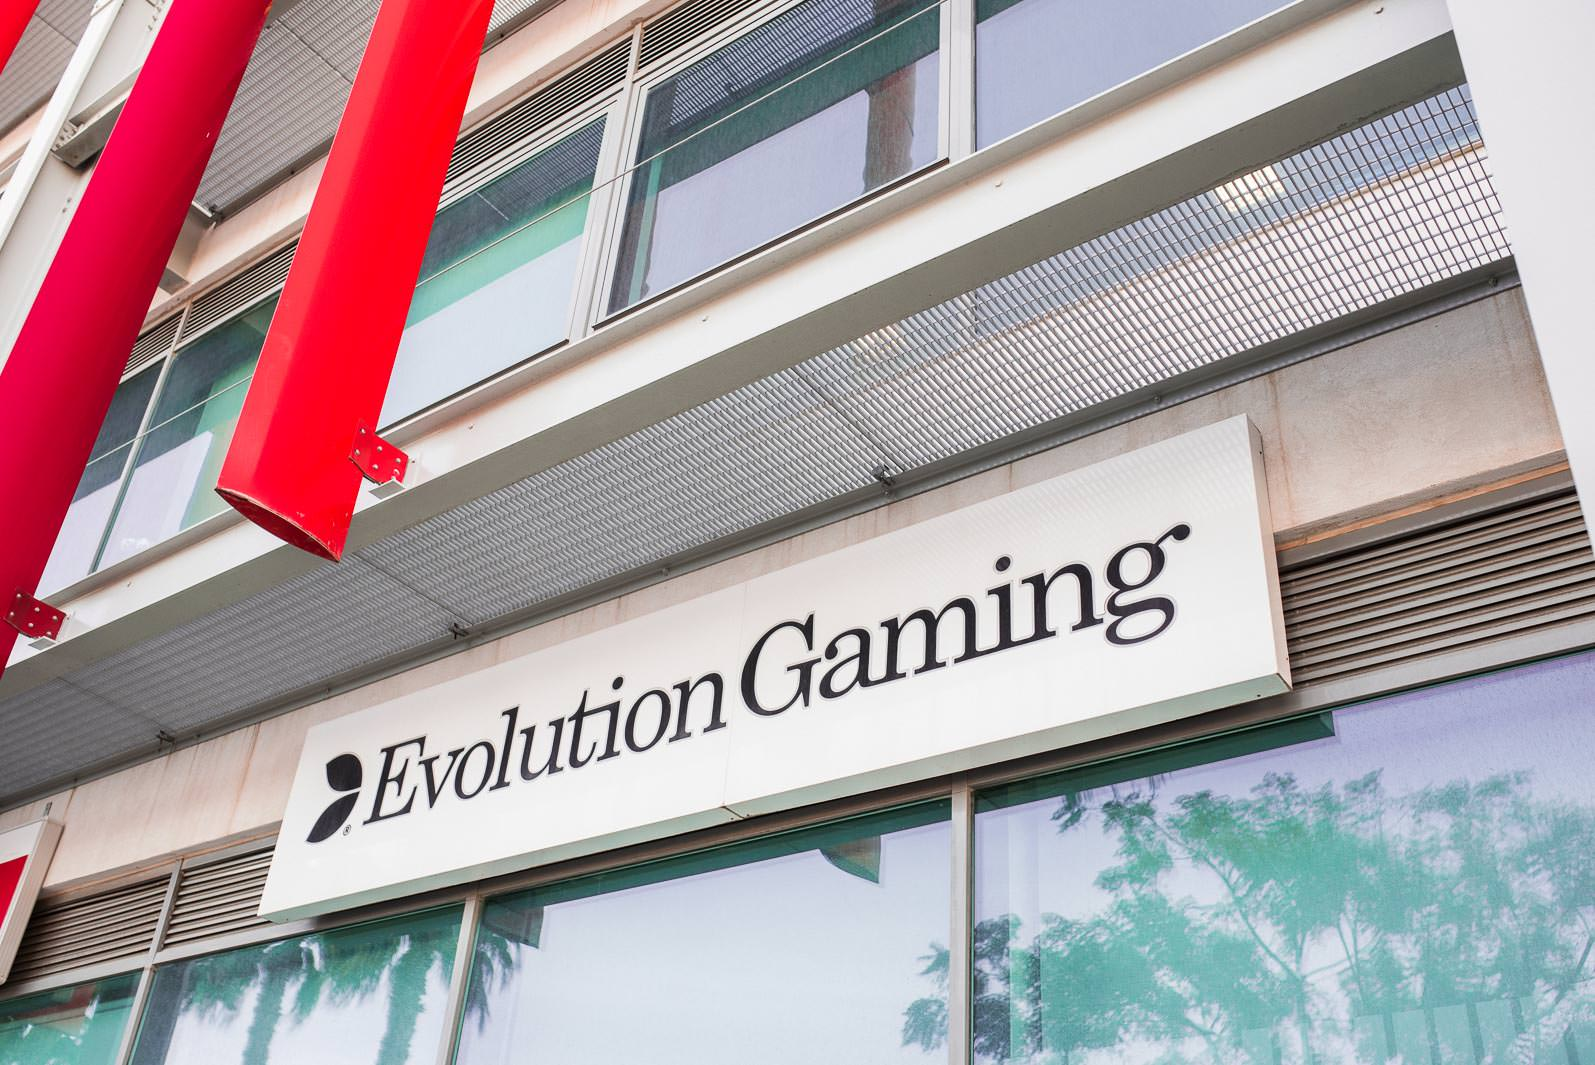 Evolution Gaming Offices